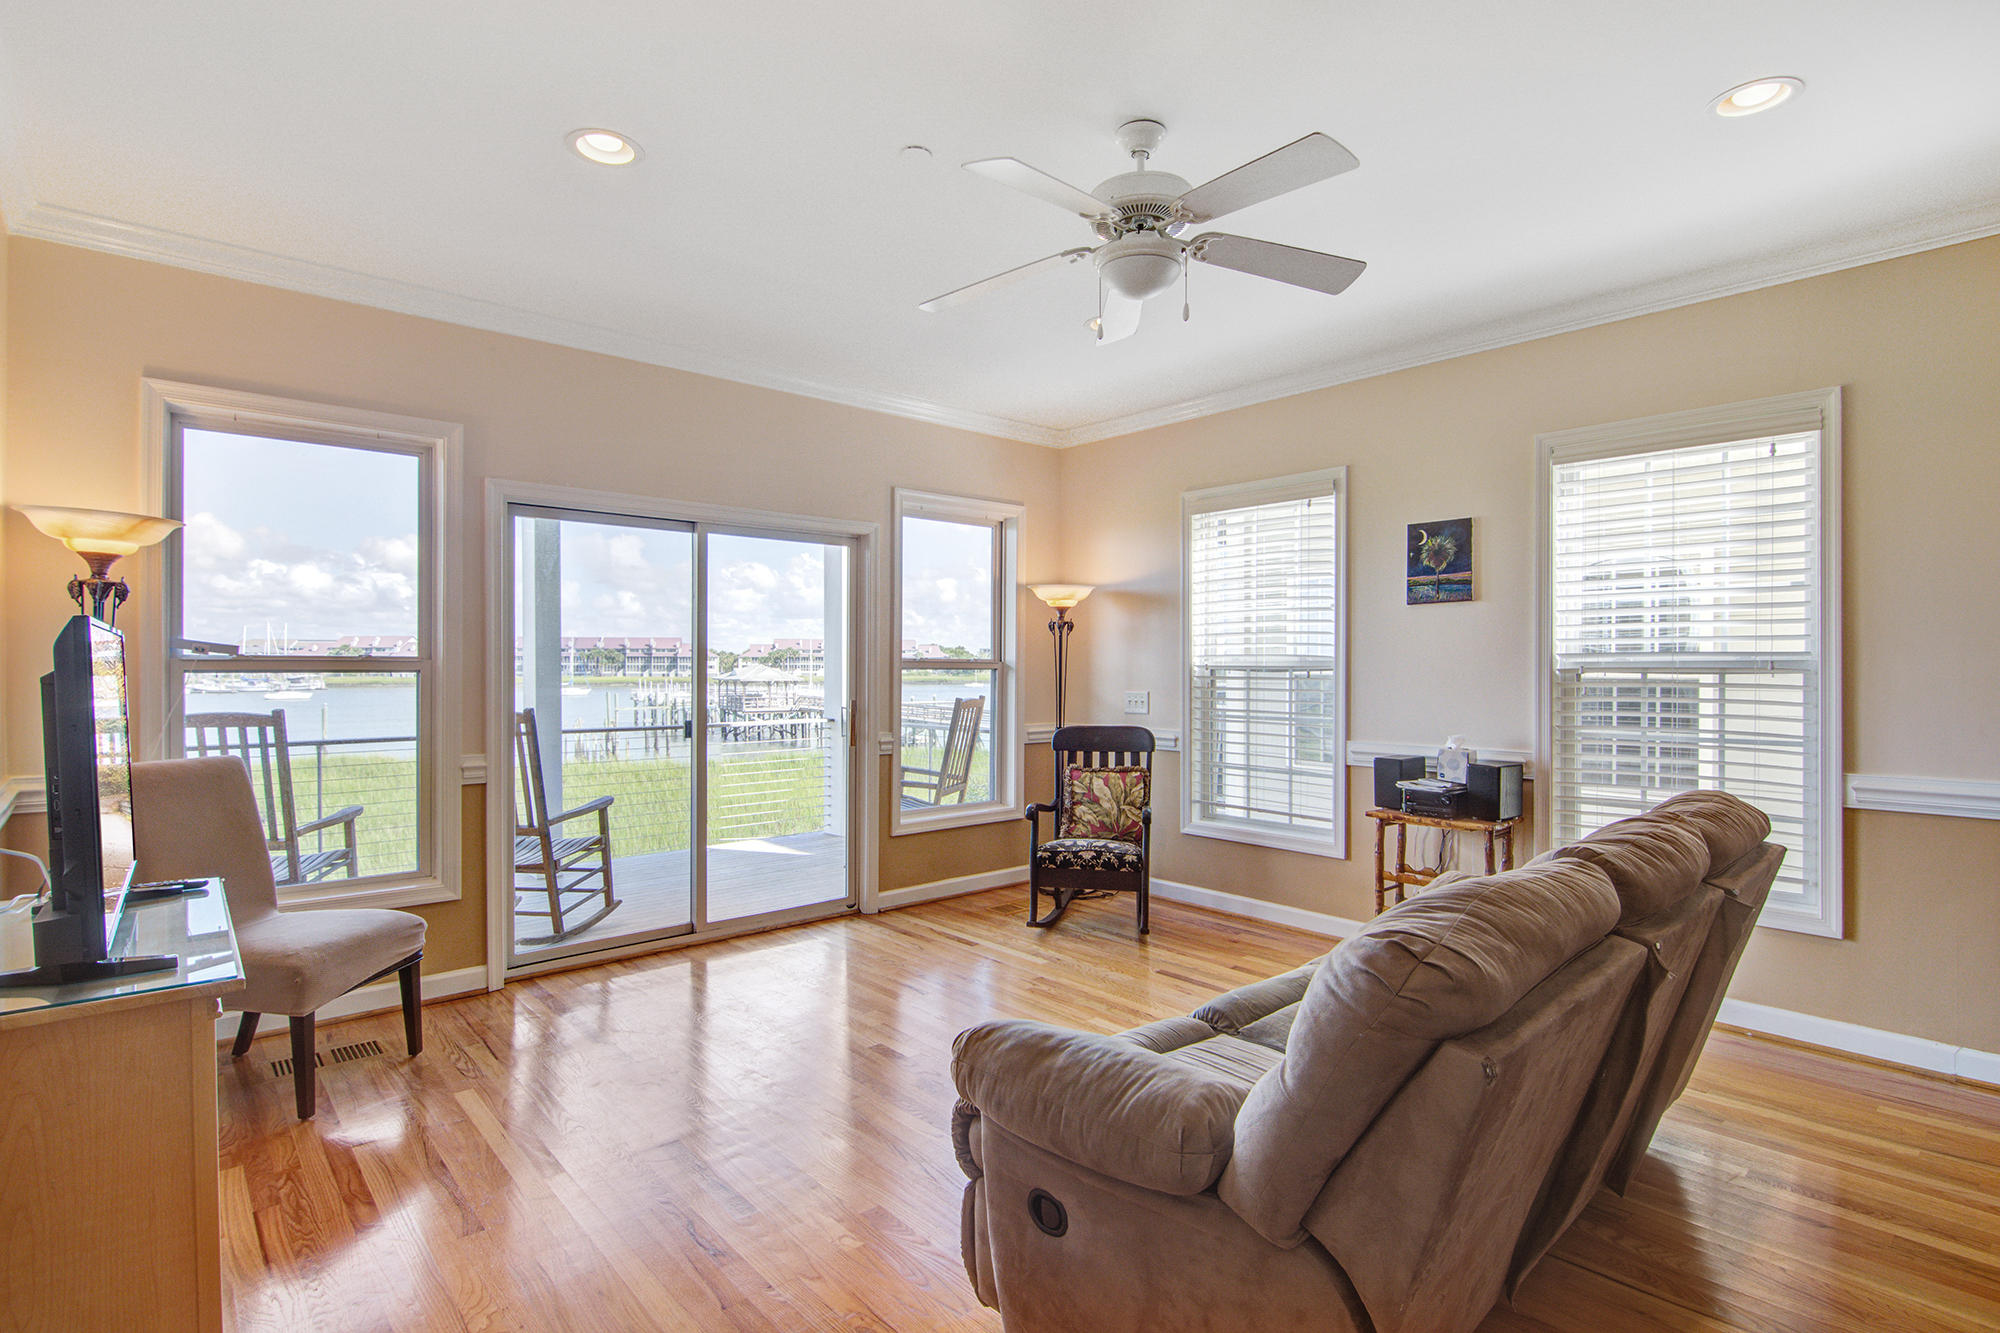 Waters Edge Homes For Sale - 119 2nd, Folly Beach, SC - 27